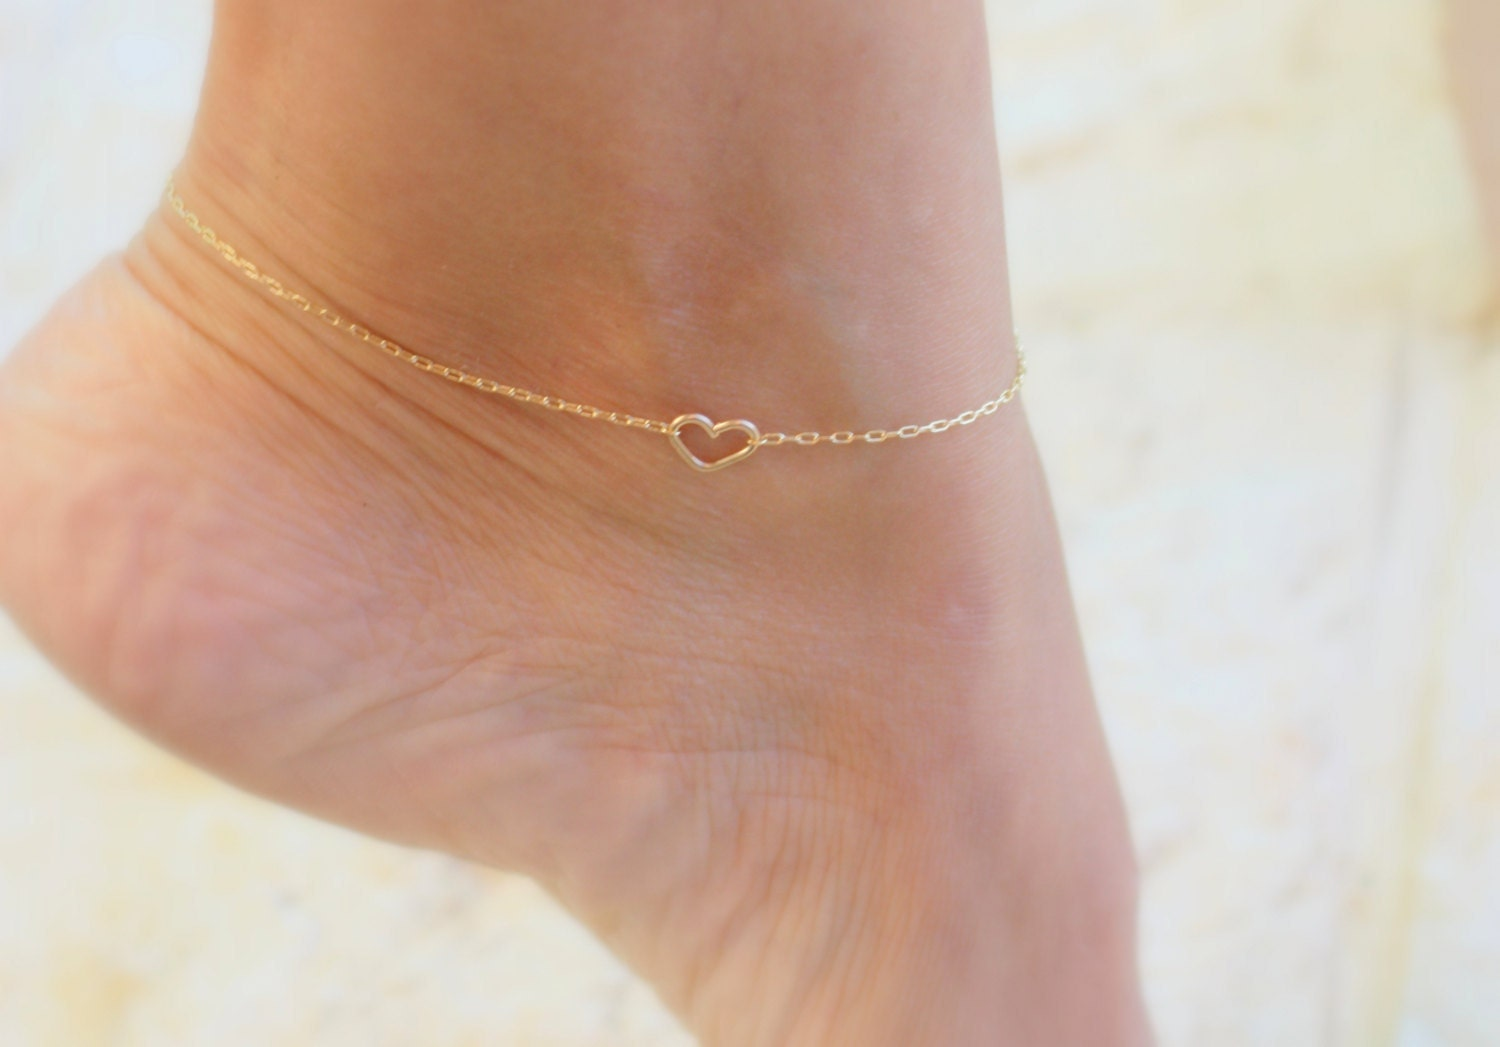 chain steel gold ankle rose charm bracelets anklet product terse bracelet link crystal paved plated stainless